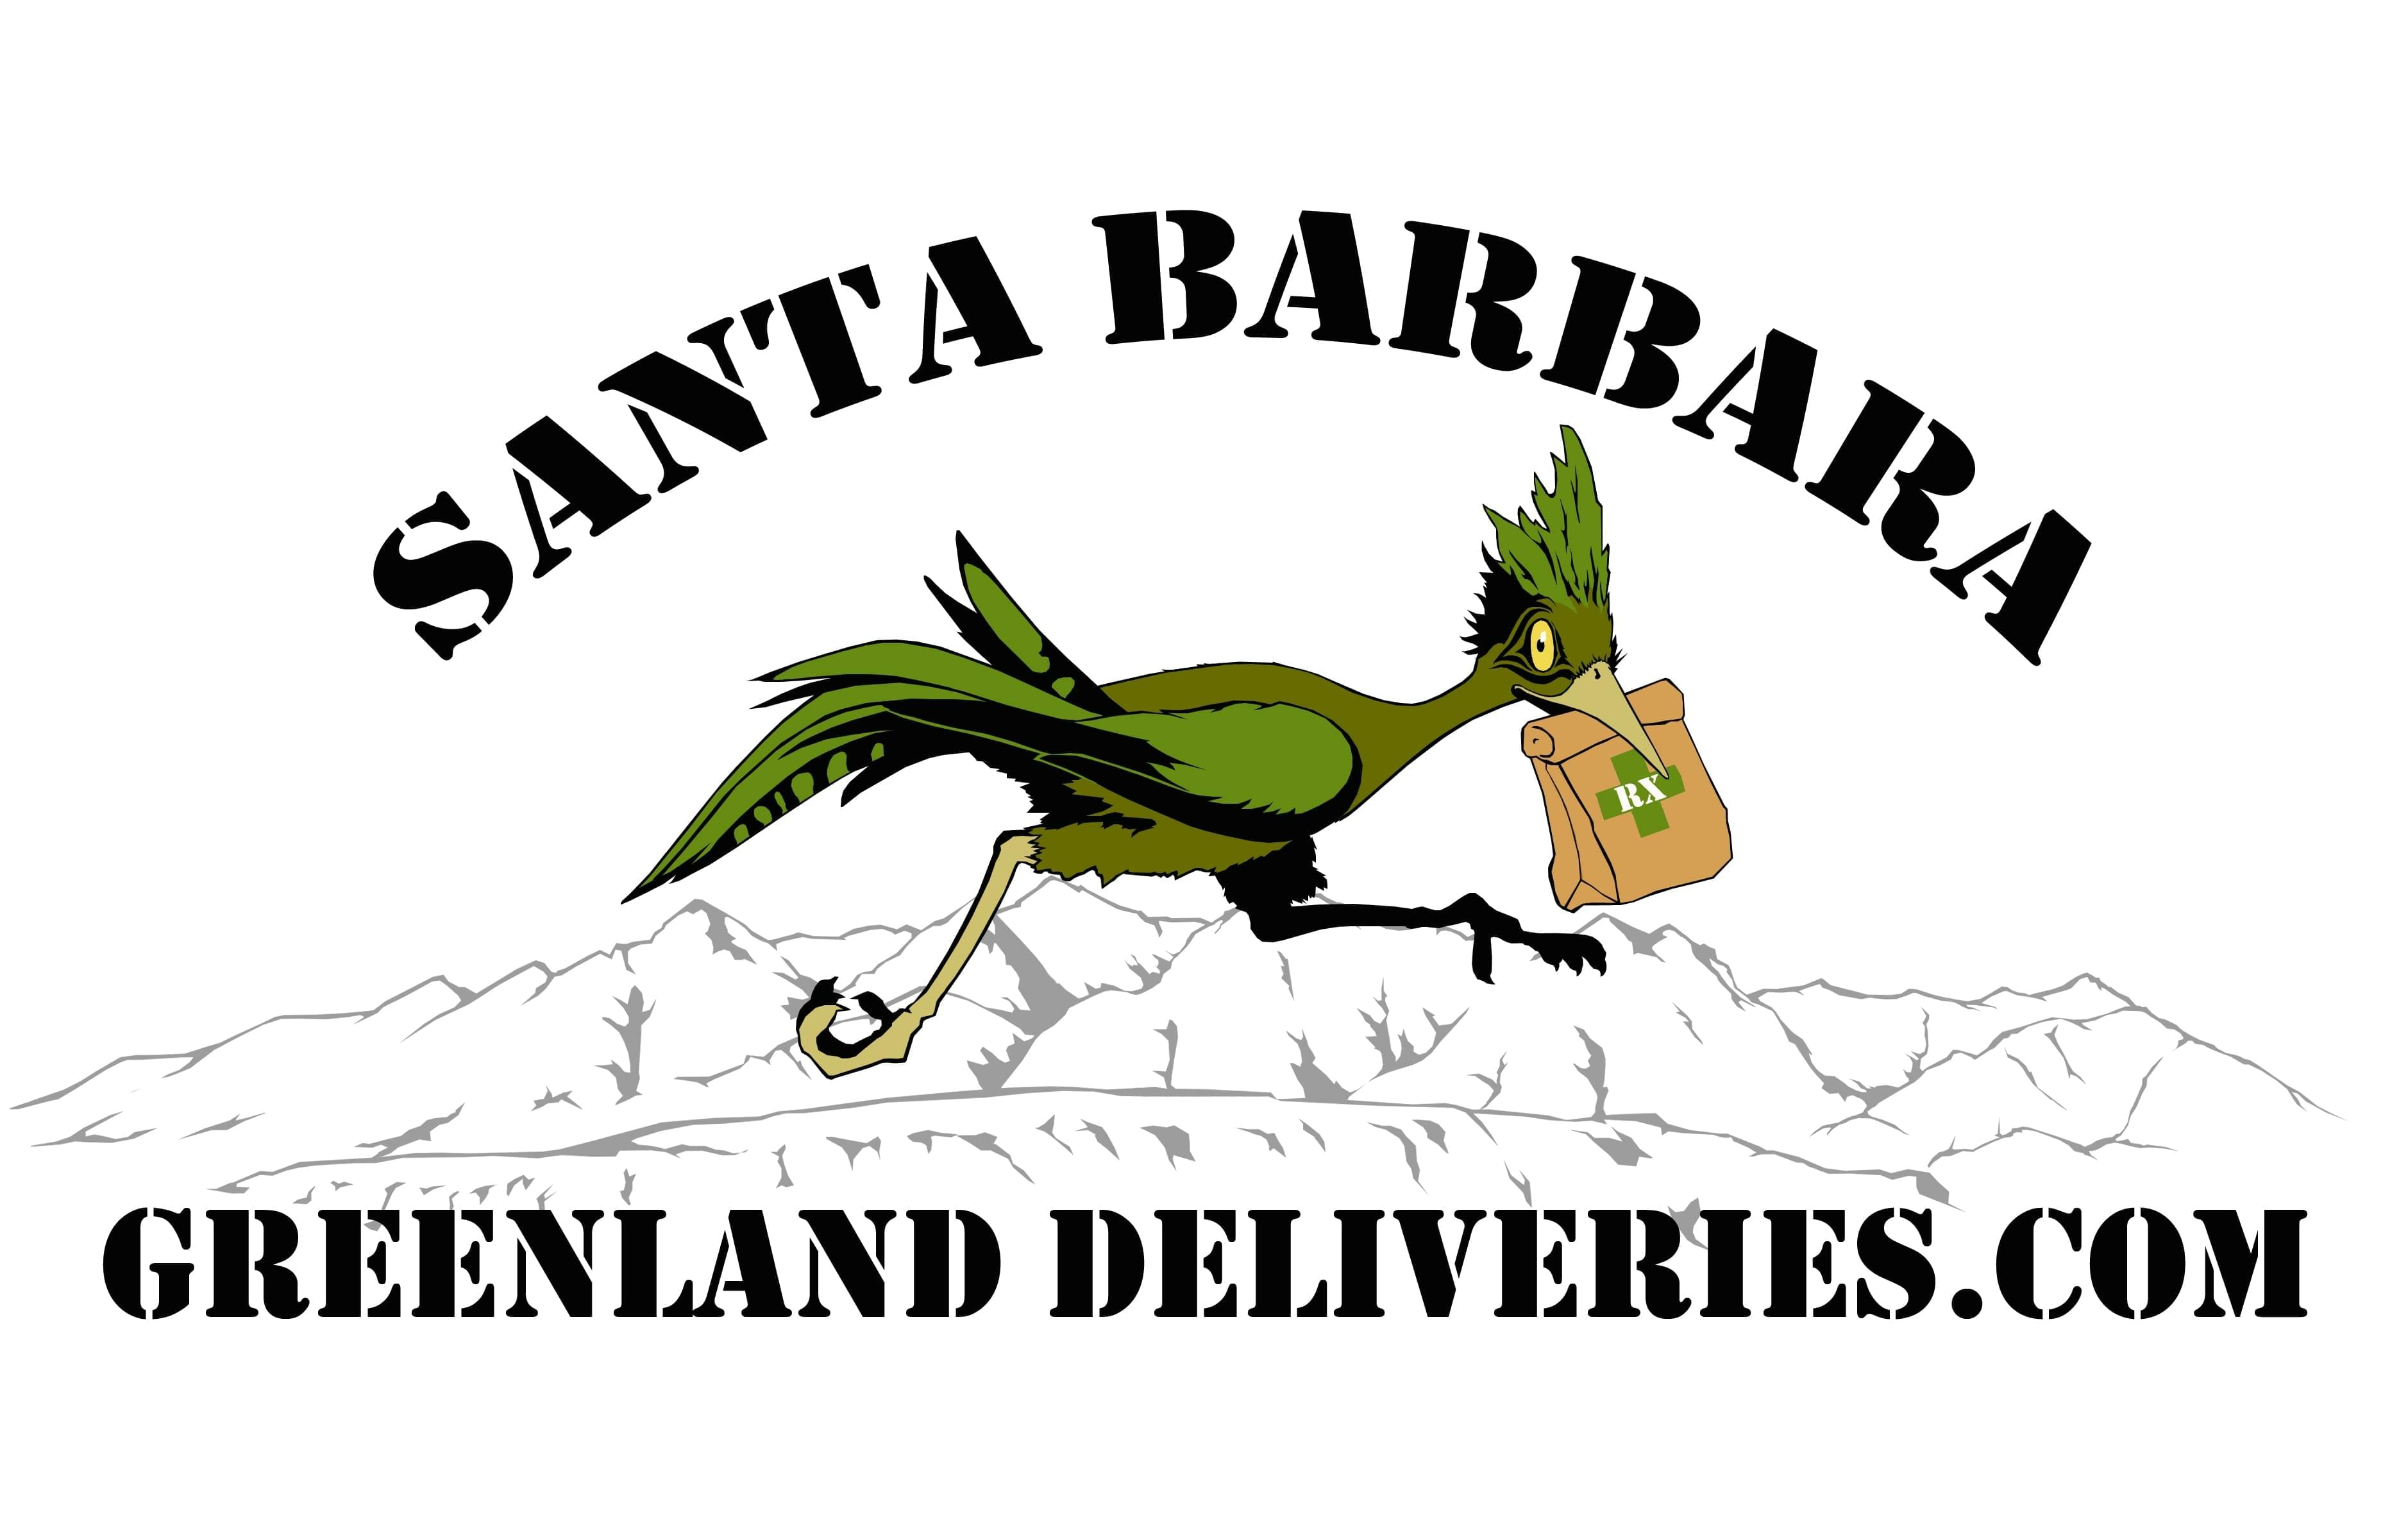 Santa Barbara Greenland Deliveries Marijuana Dispensary